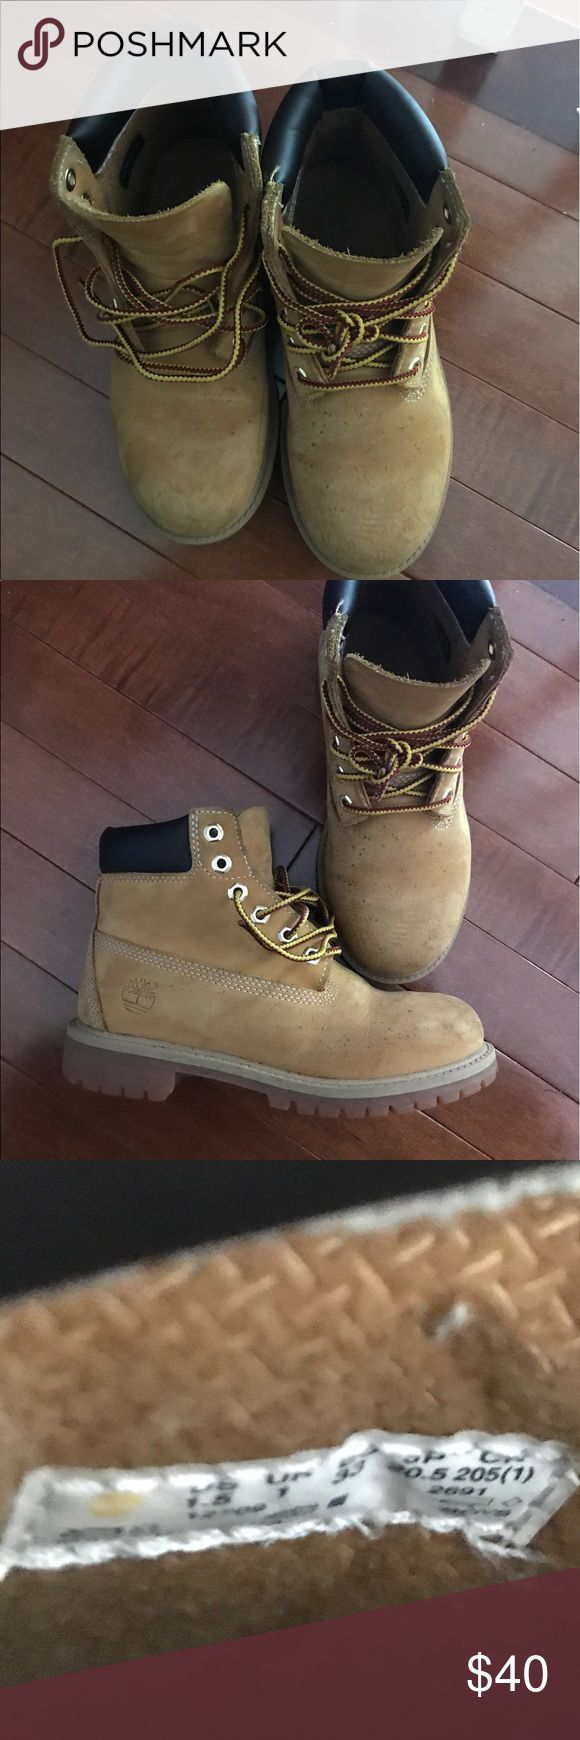 Boys Timberland Boots Boys Timberland Boots size 1.5 Timberland Shoes Boots